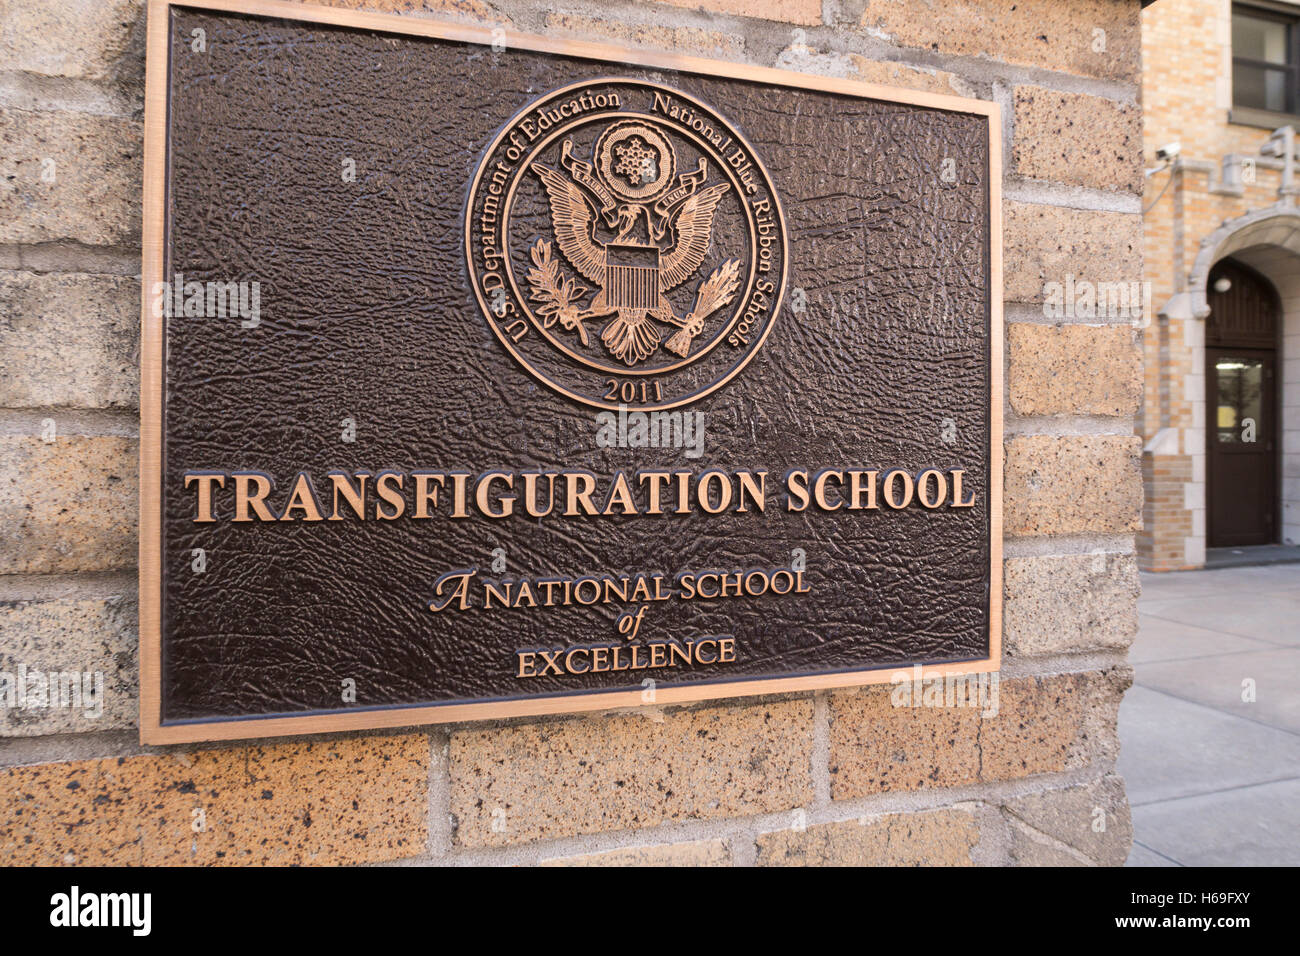 Bronze Plaque,  A National School of Excellence,  Transfiguration  School, Chinatown, NYc, USA - Stock Image